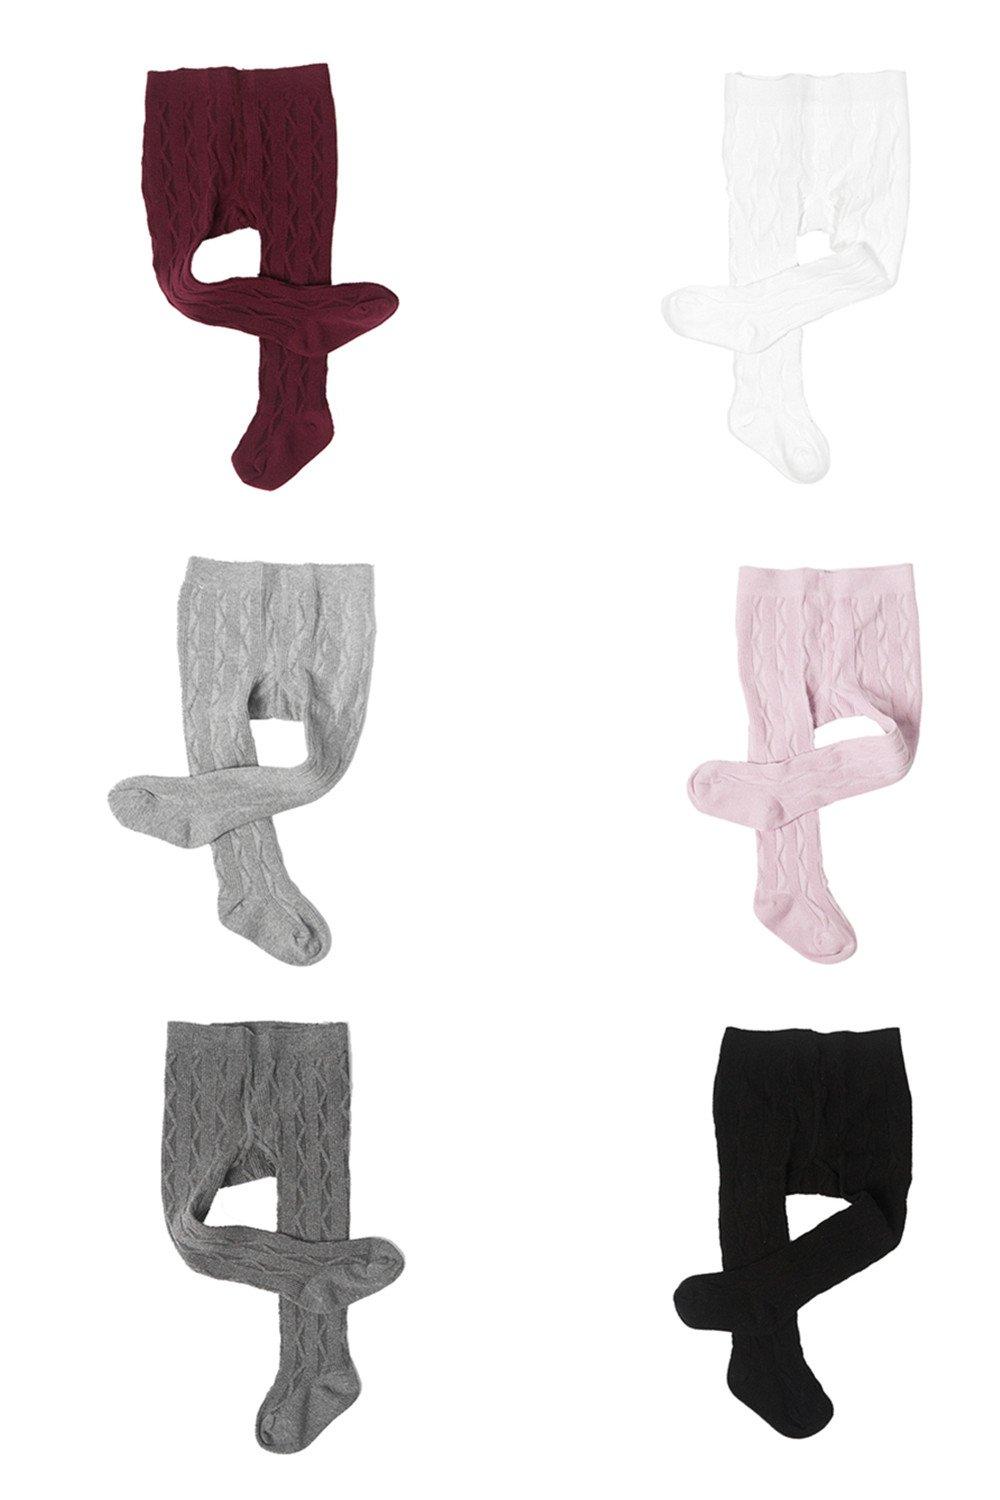 Ding-dong Baby Kid Girl Cotton Tights(Style 7,pack of 6,6-12M) by Ding Dong